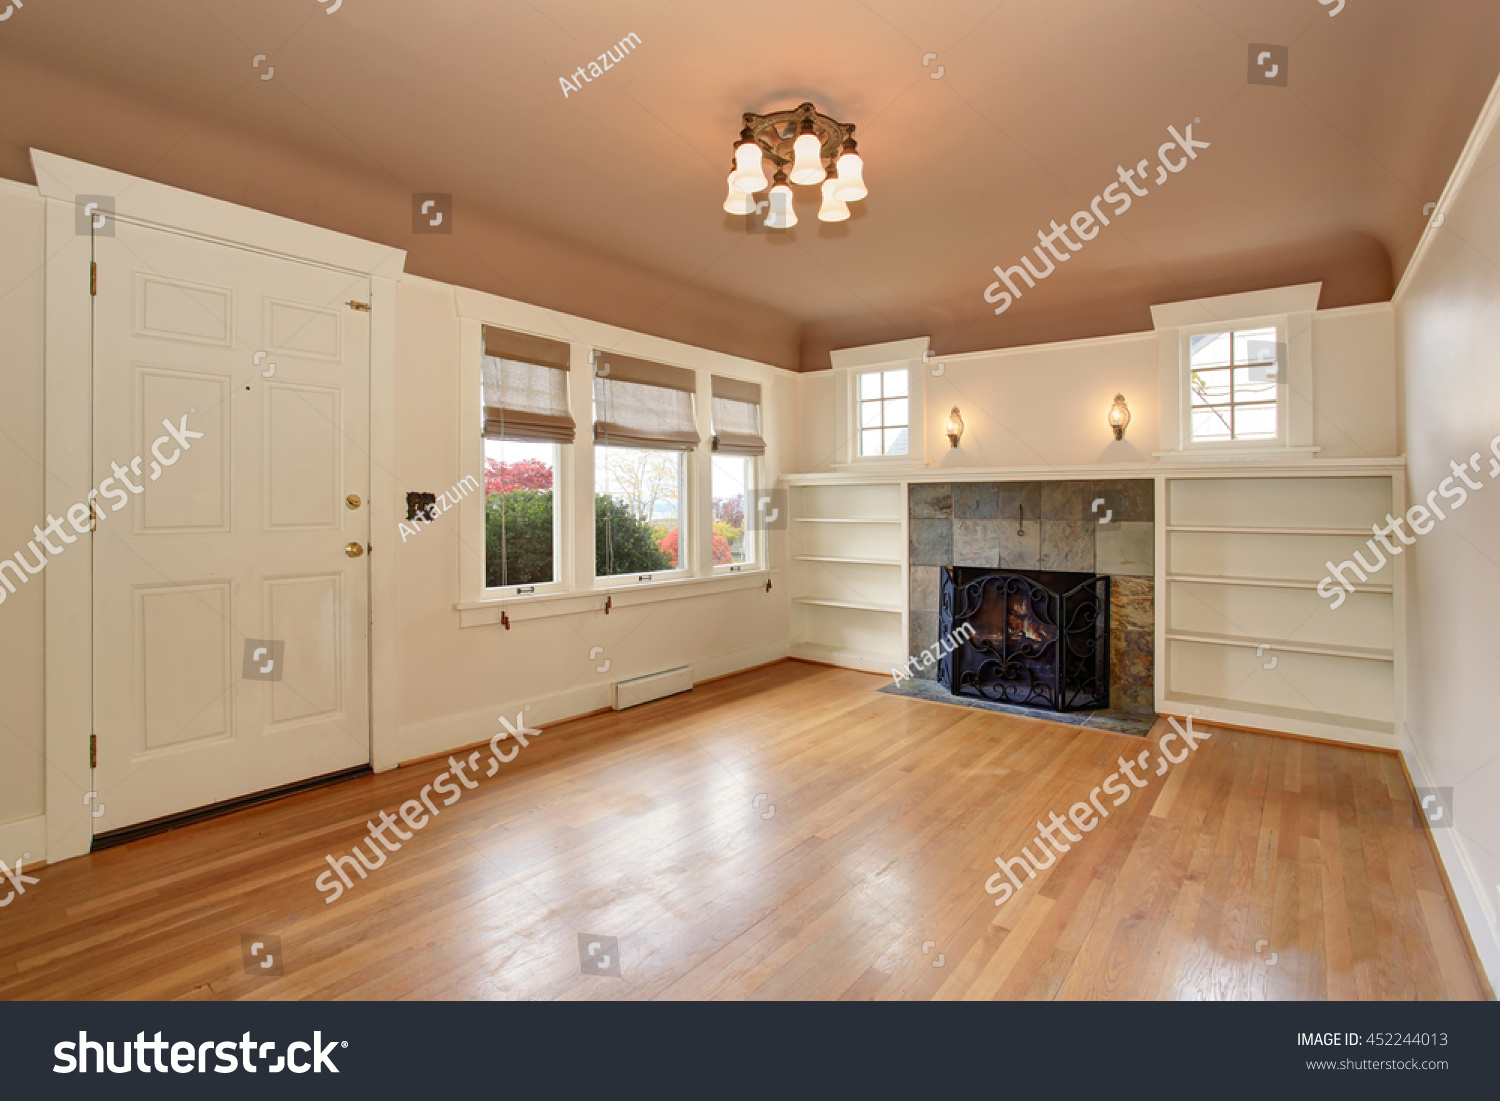 Empty Living Room Interior With Mocha Ceiling Hardwood Floor And